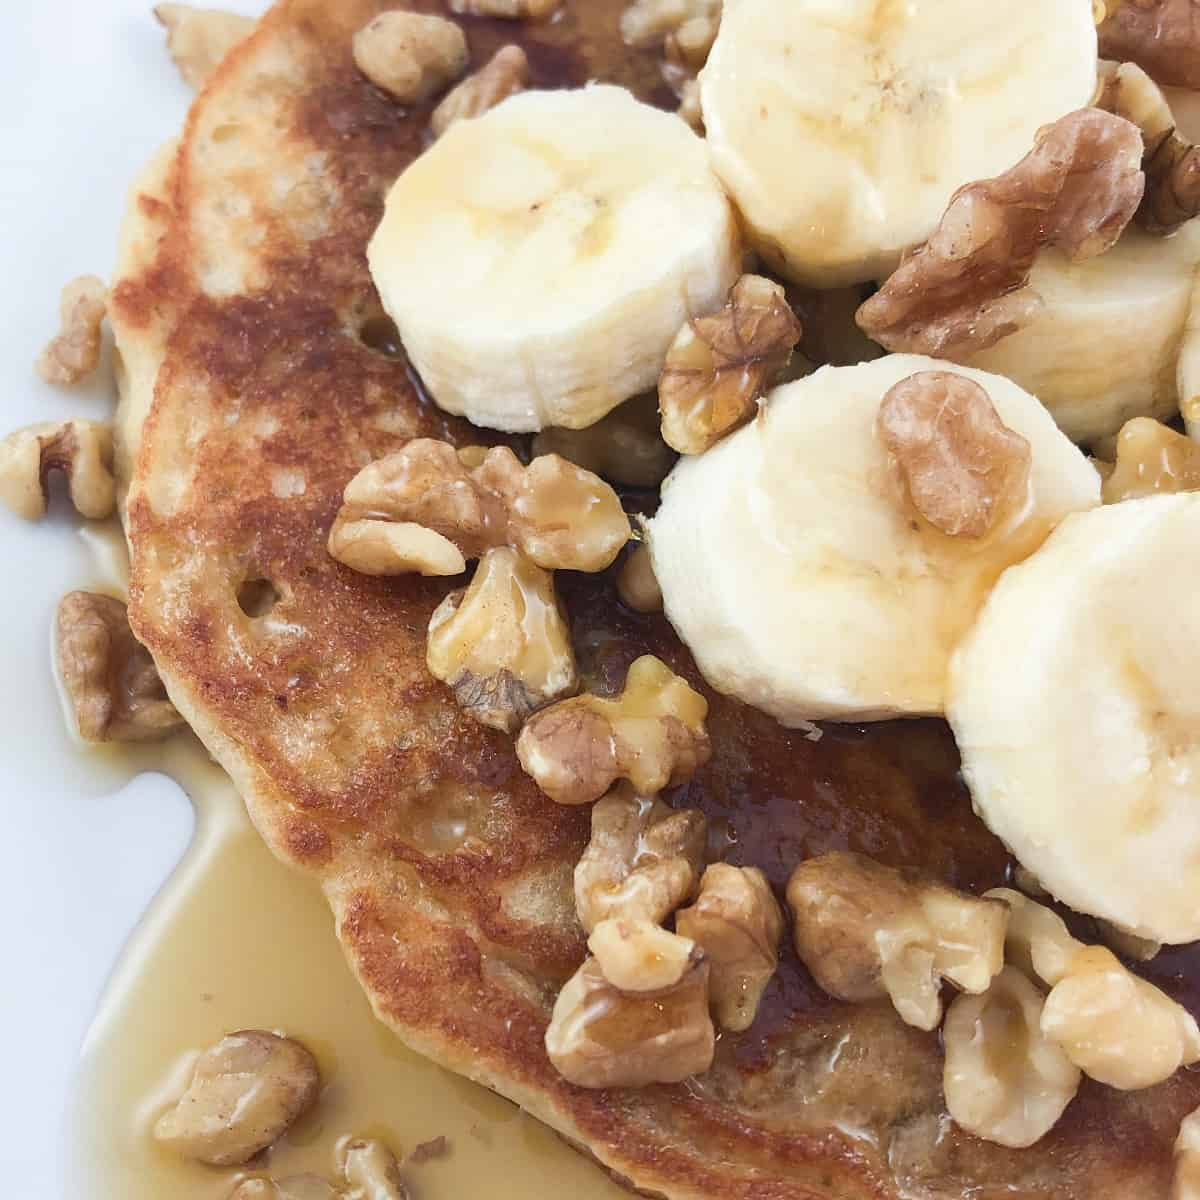 healthy oatmeal buttermilk pancake topped with bananas, walnuts, and maple syrup